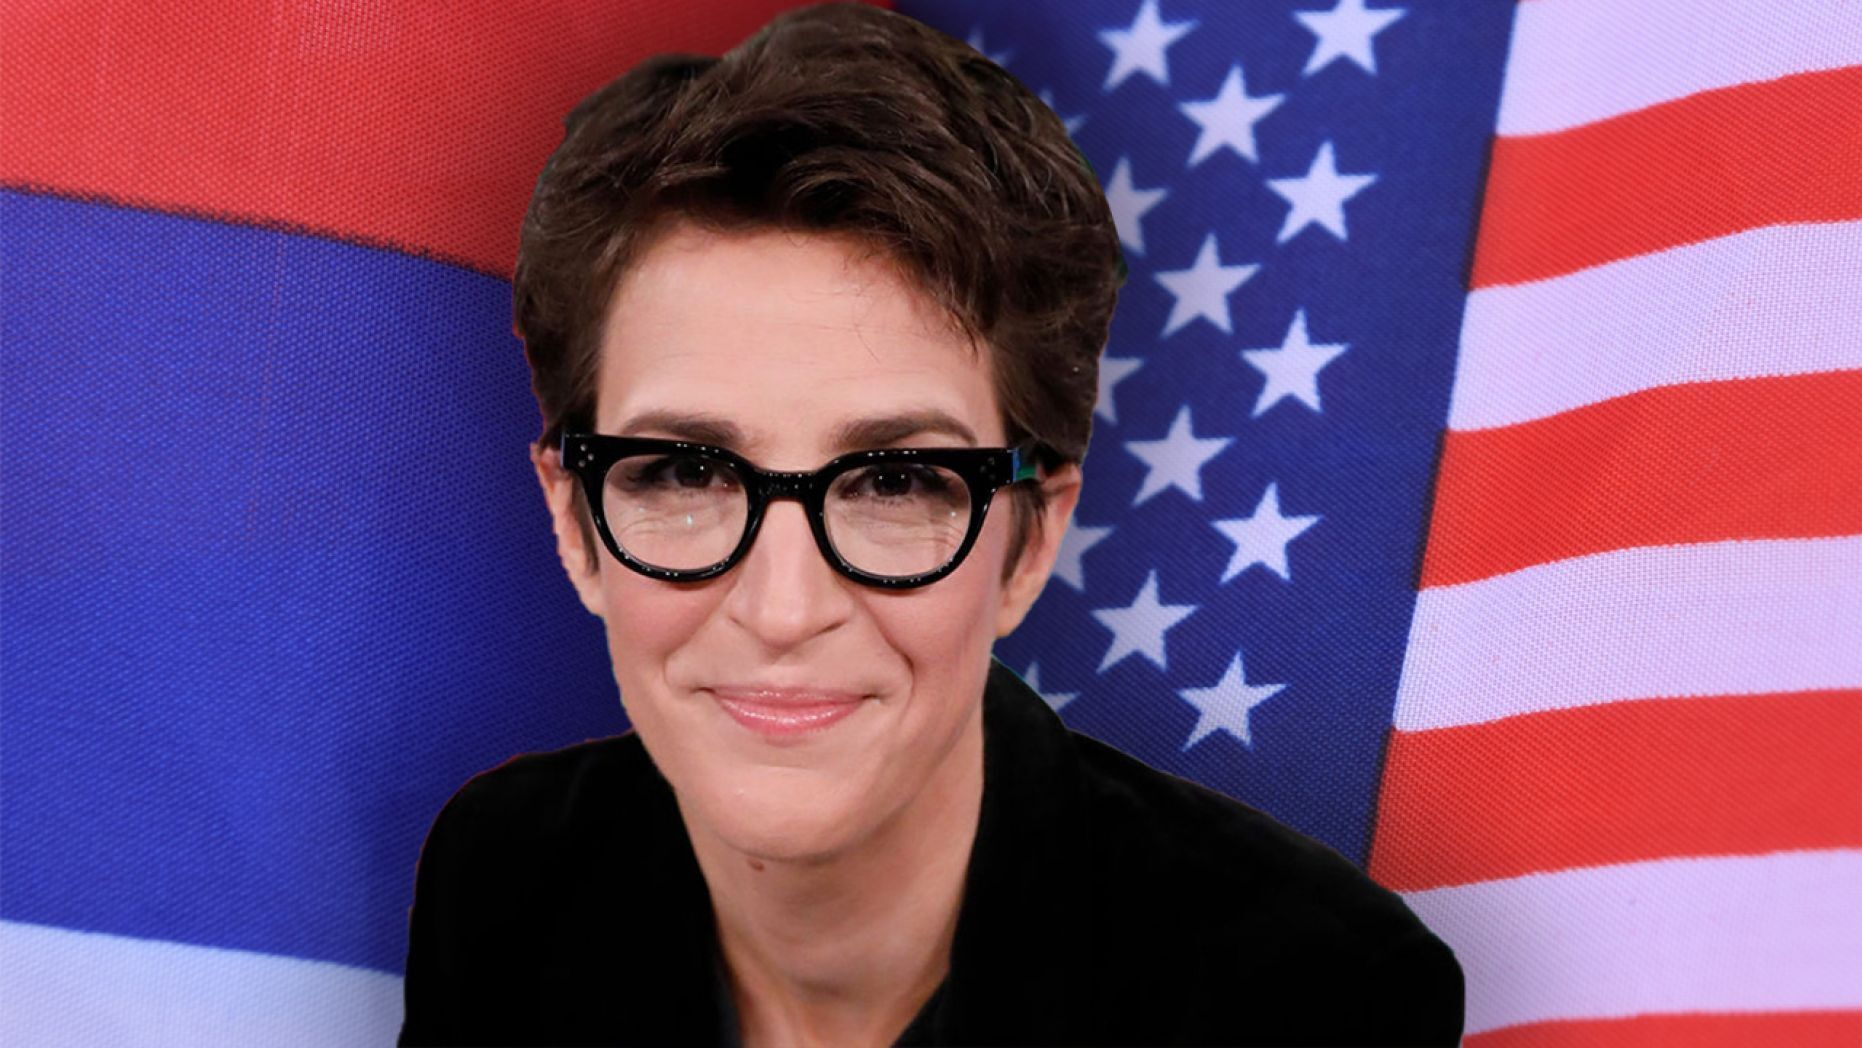 Rachel Maddow's credibility and ratings at a low ebb